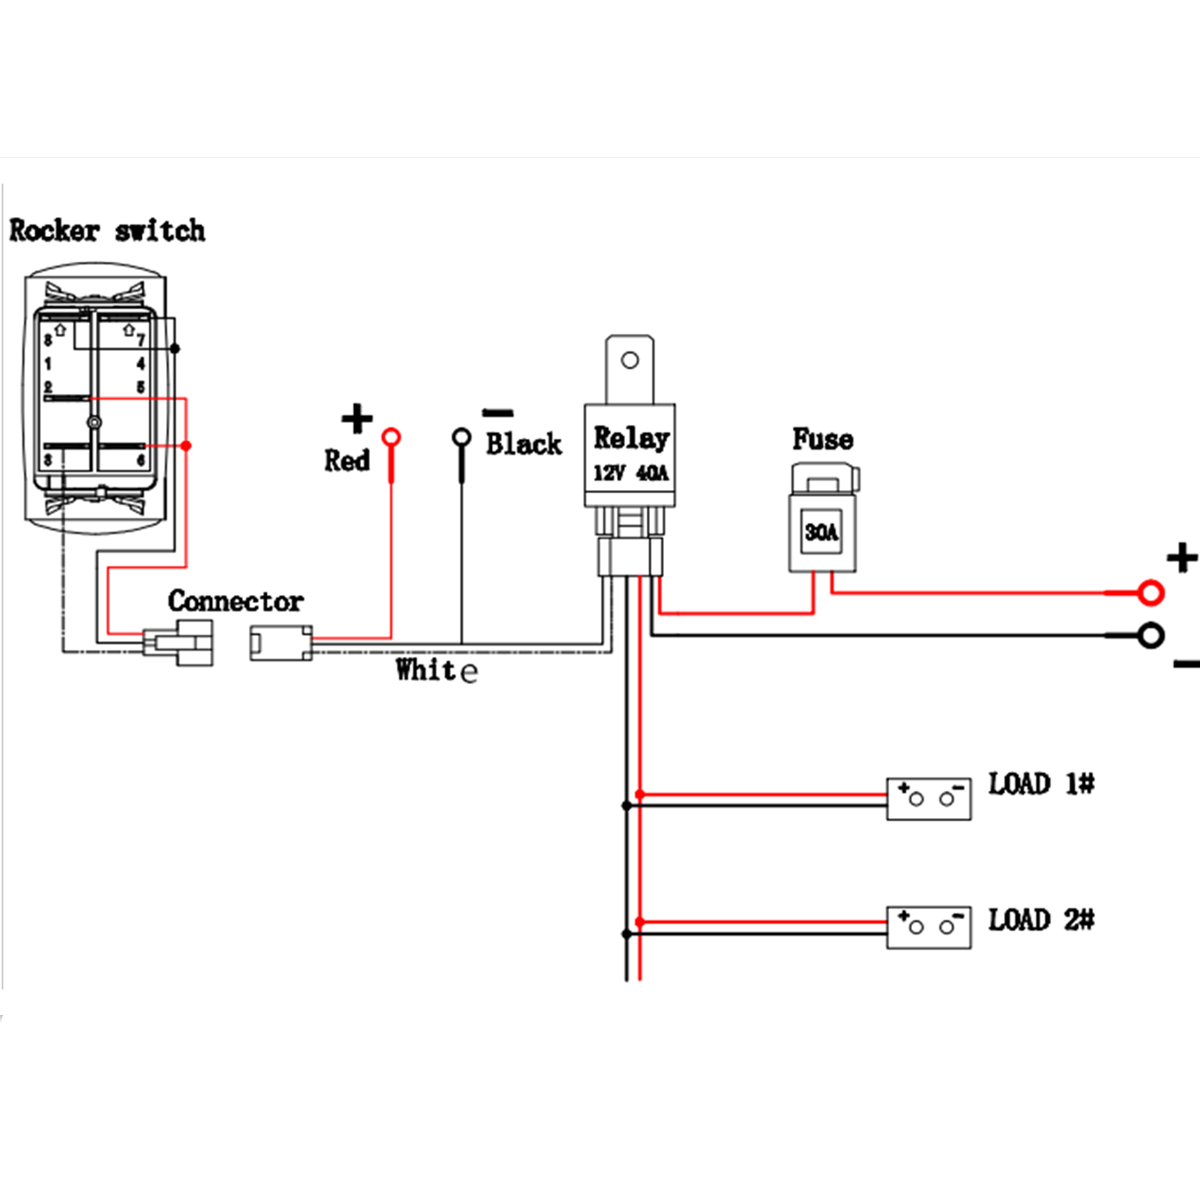 5 Wire Led Diagram | Wiring Diagram - Auto Relay Wiring Diagram